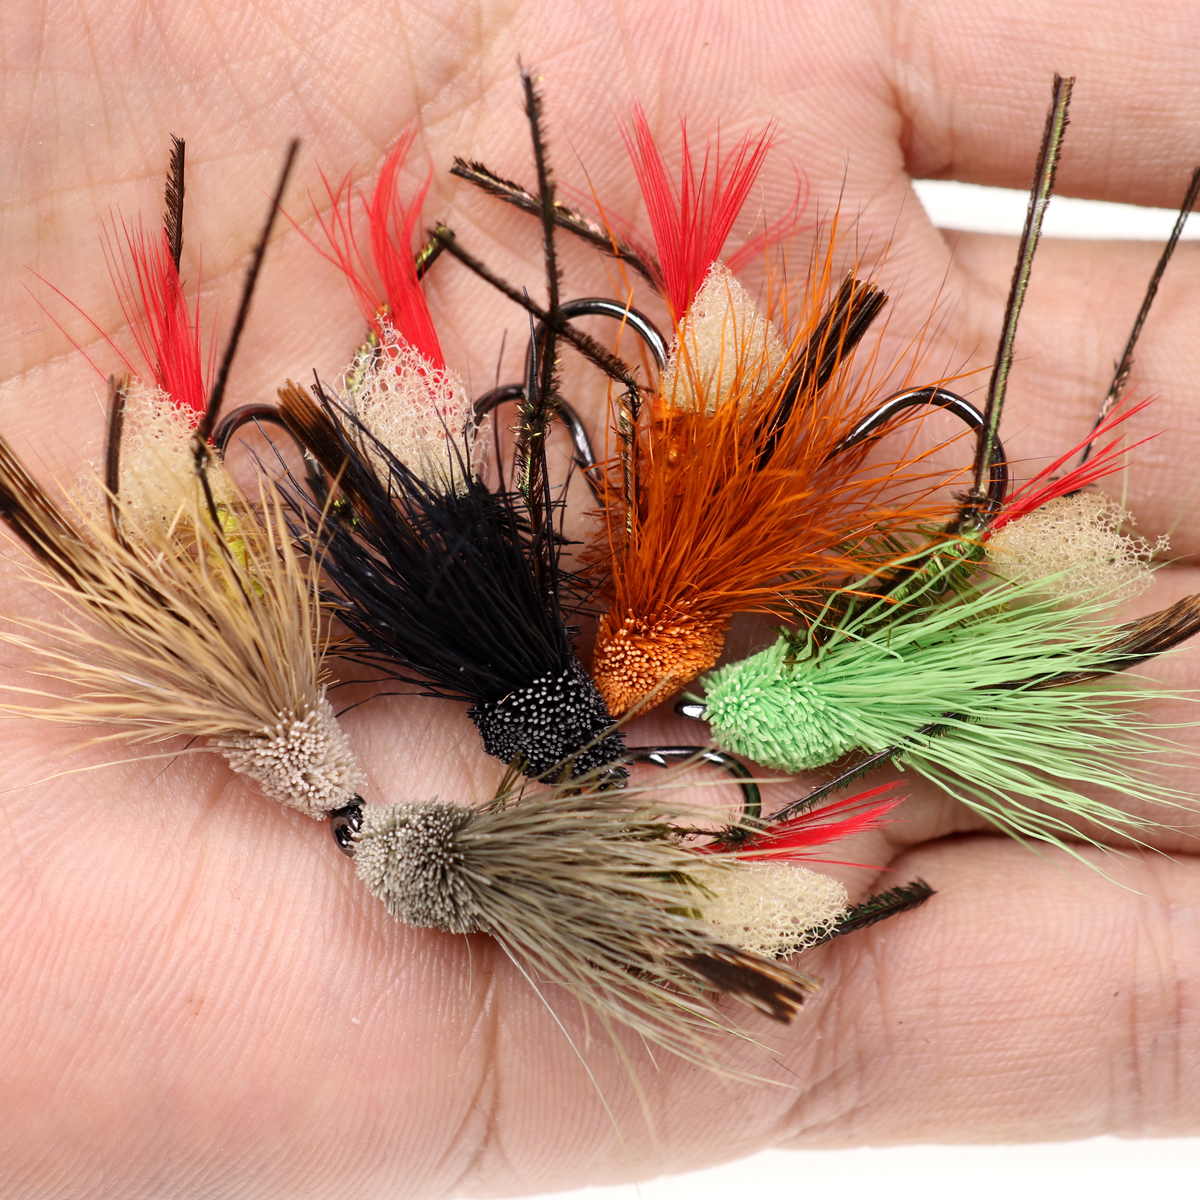 5PCS #10 Trout Fishing Fly Grass Hopper Fly terrestrial Hopper Fly Floating Bass Crappie Bug Bait Artificial Lure 26